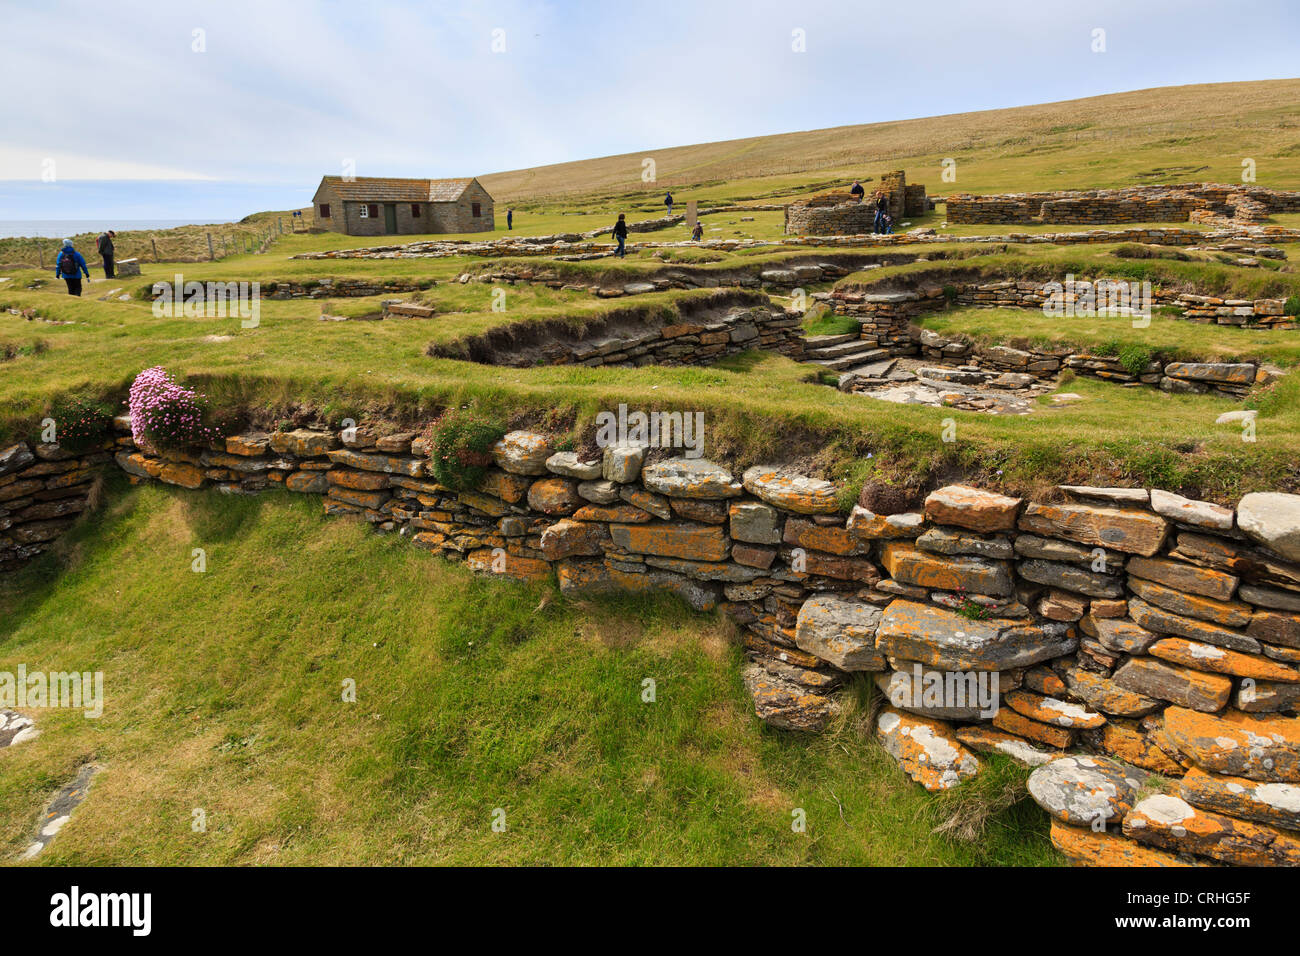 Remains of Norse long houses in a 10th century settlement excavated on the Brough of Birsay Orkney Islands Scotland - Stock Image